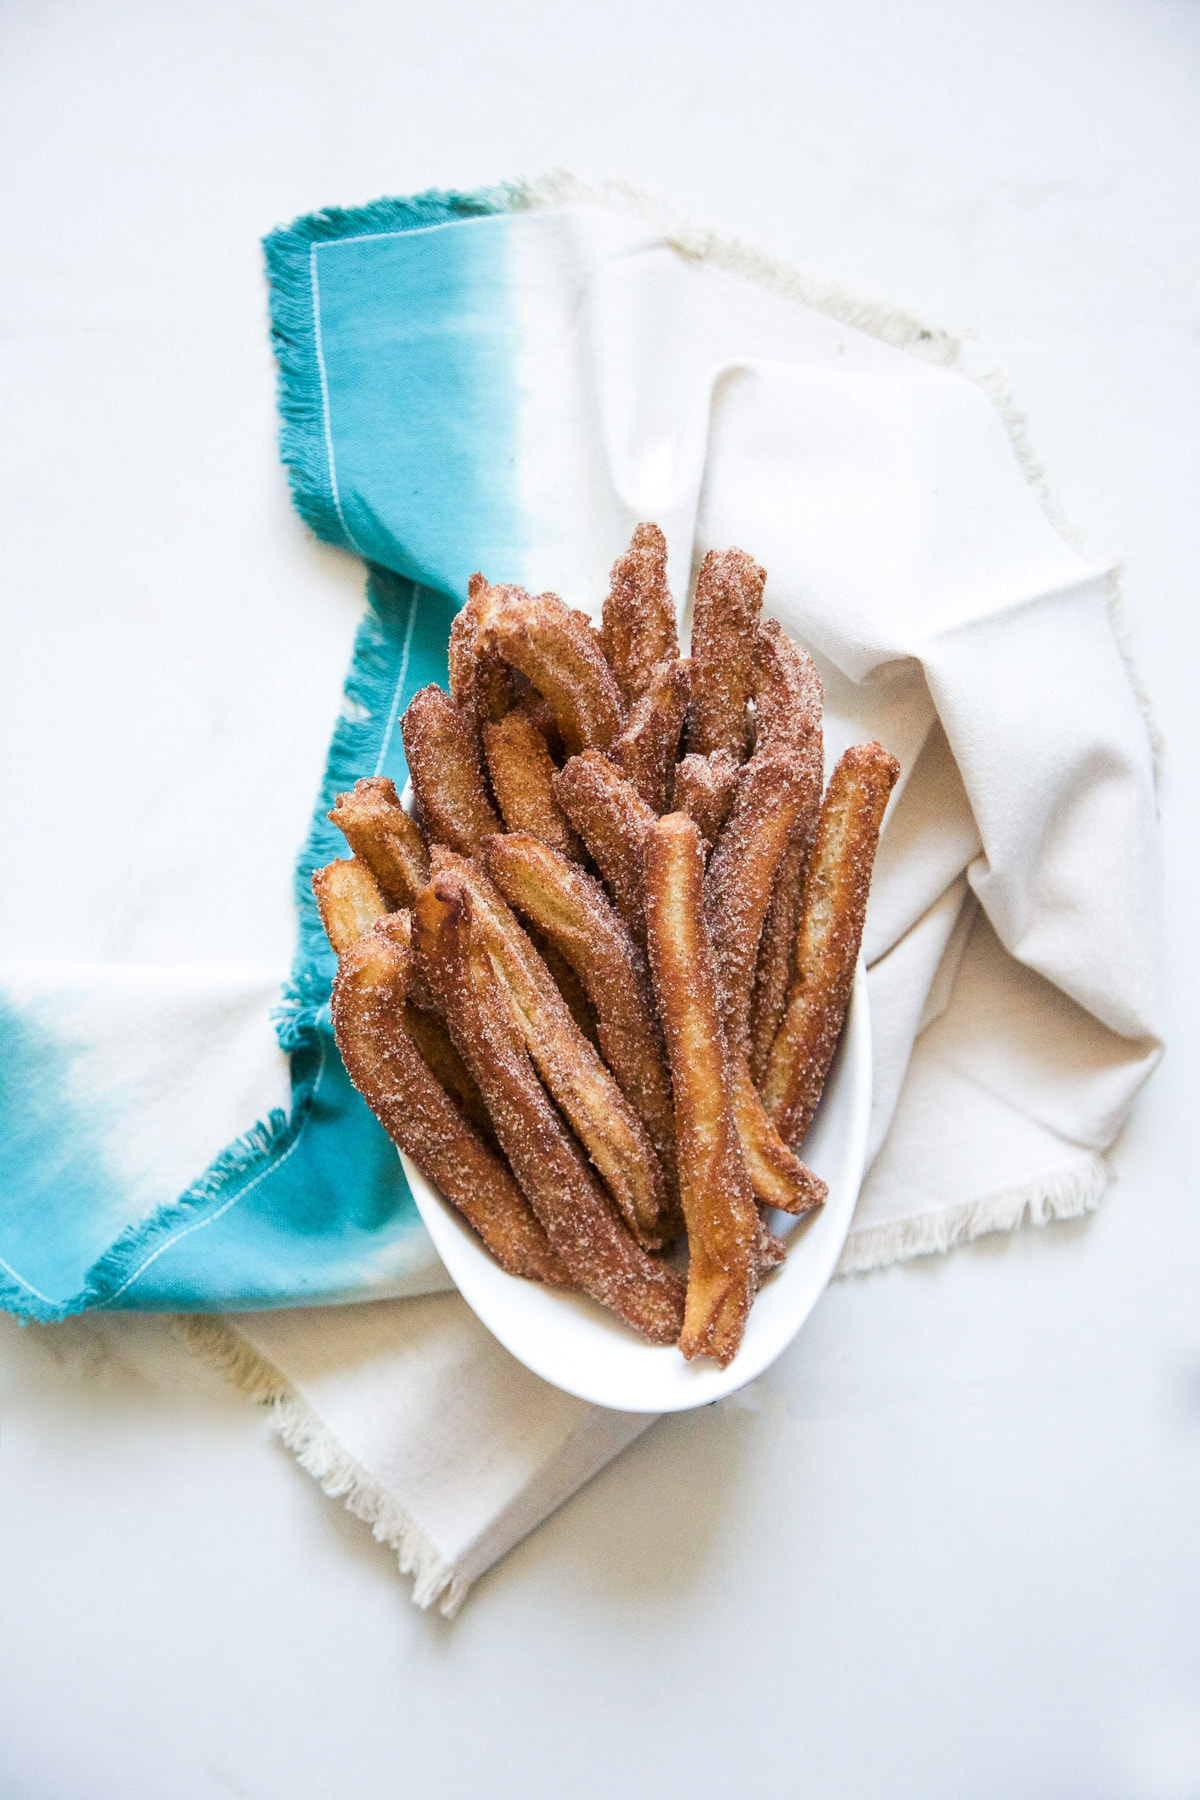 Cinnamon Churros with Chili Chocolate by Sugar & Cloth, an award winning DIY, recipes, and home decor blog.